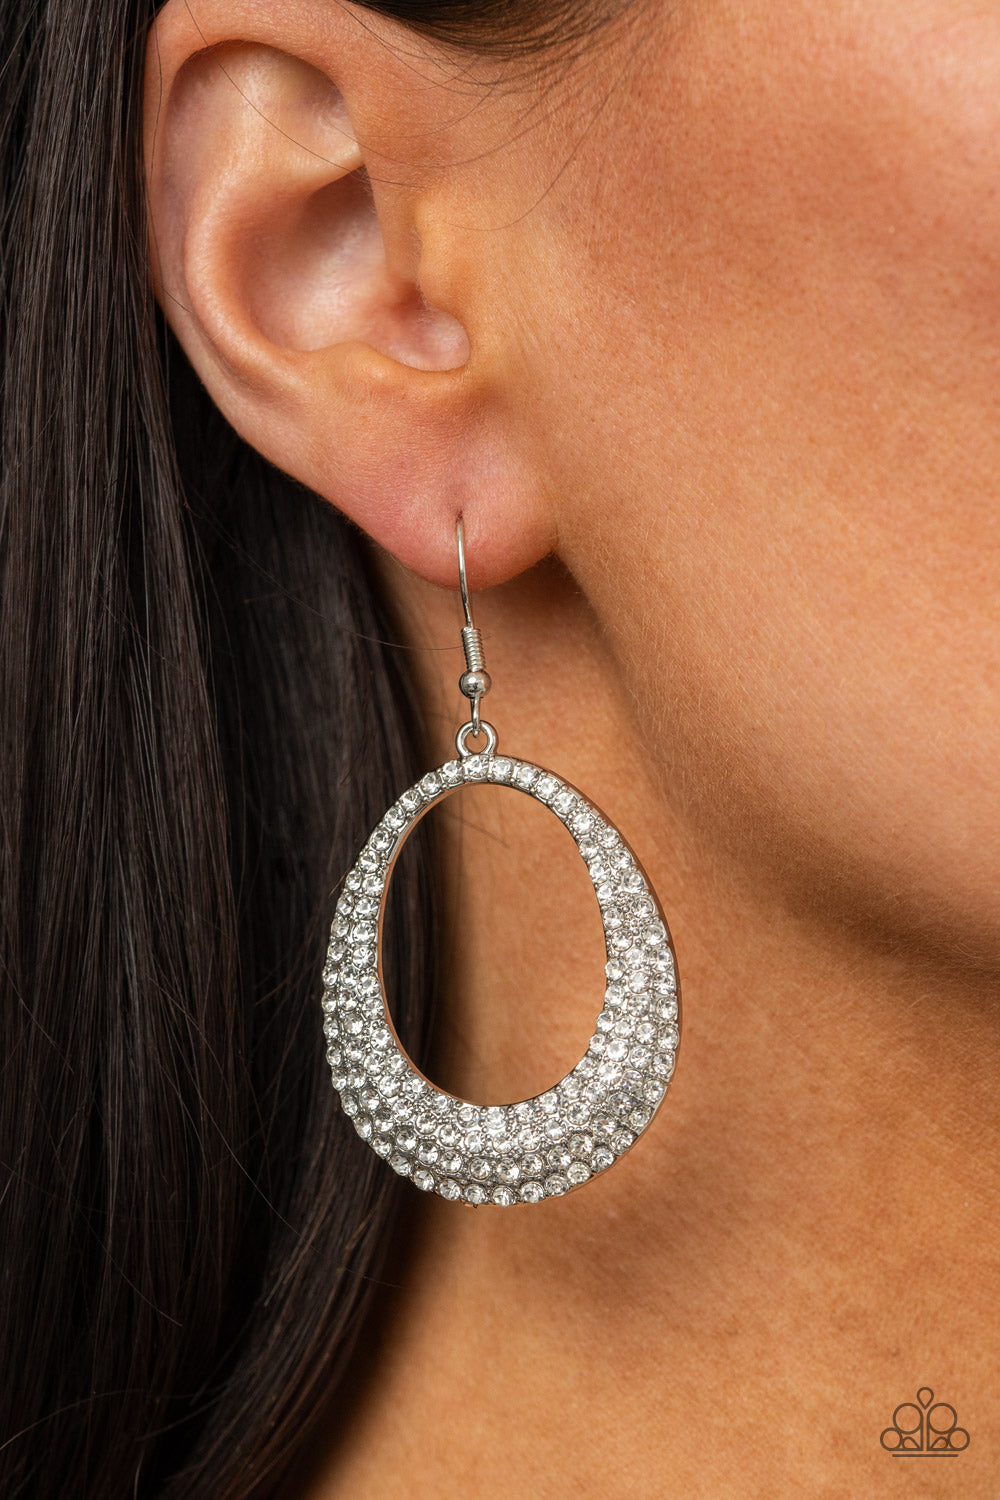 Life GLOWS On - White Earrings - Paparazzi Accessories